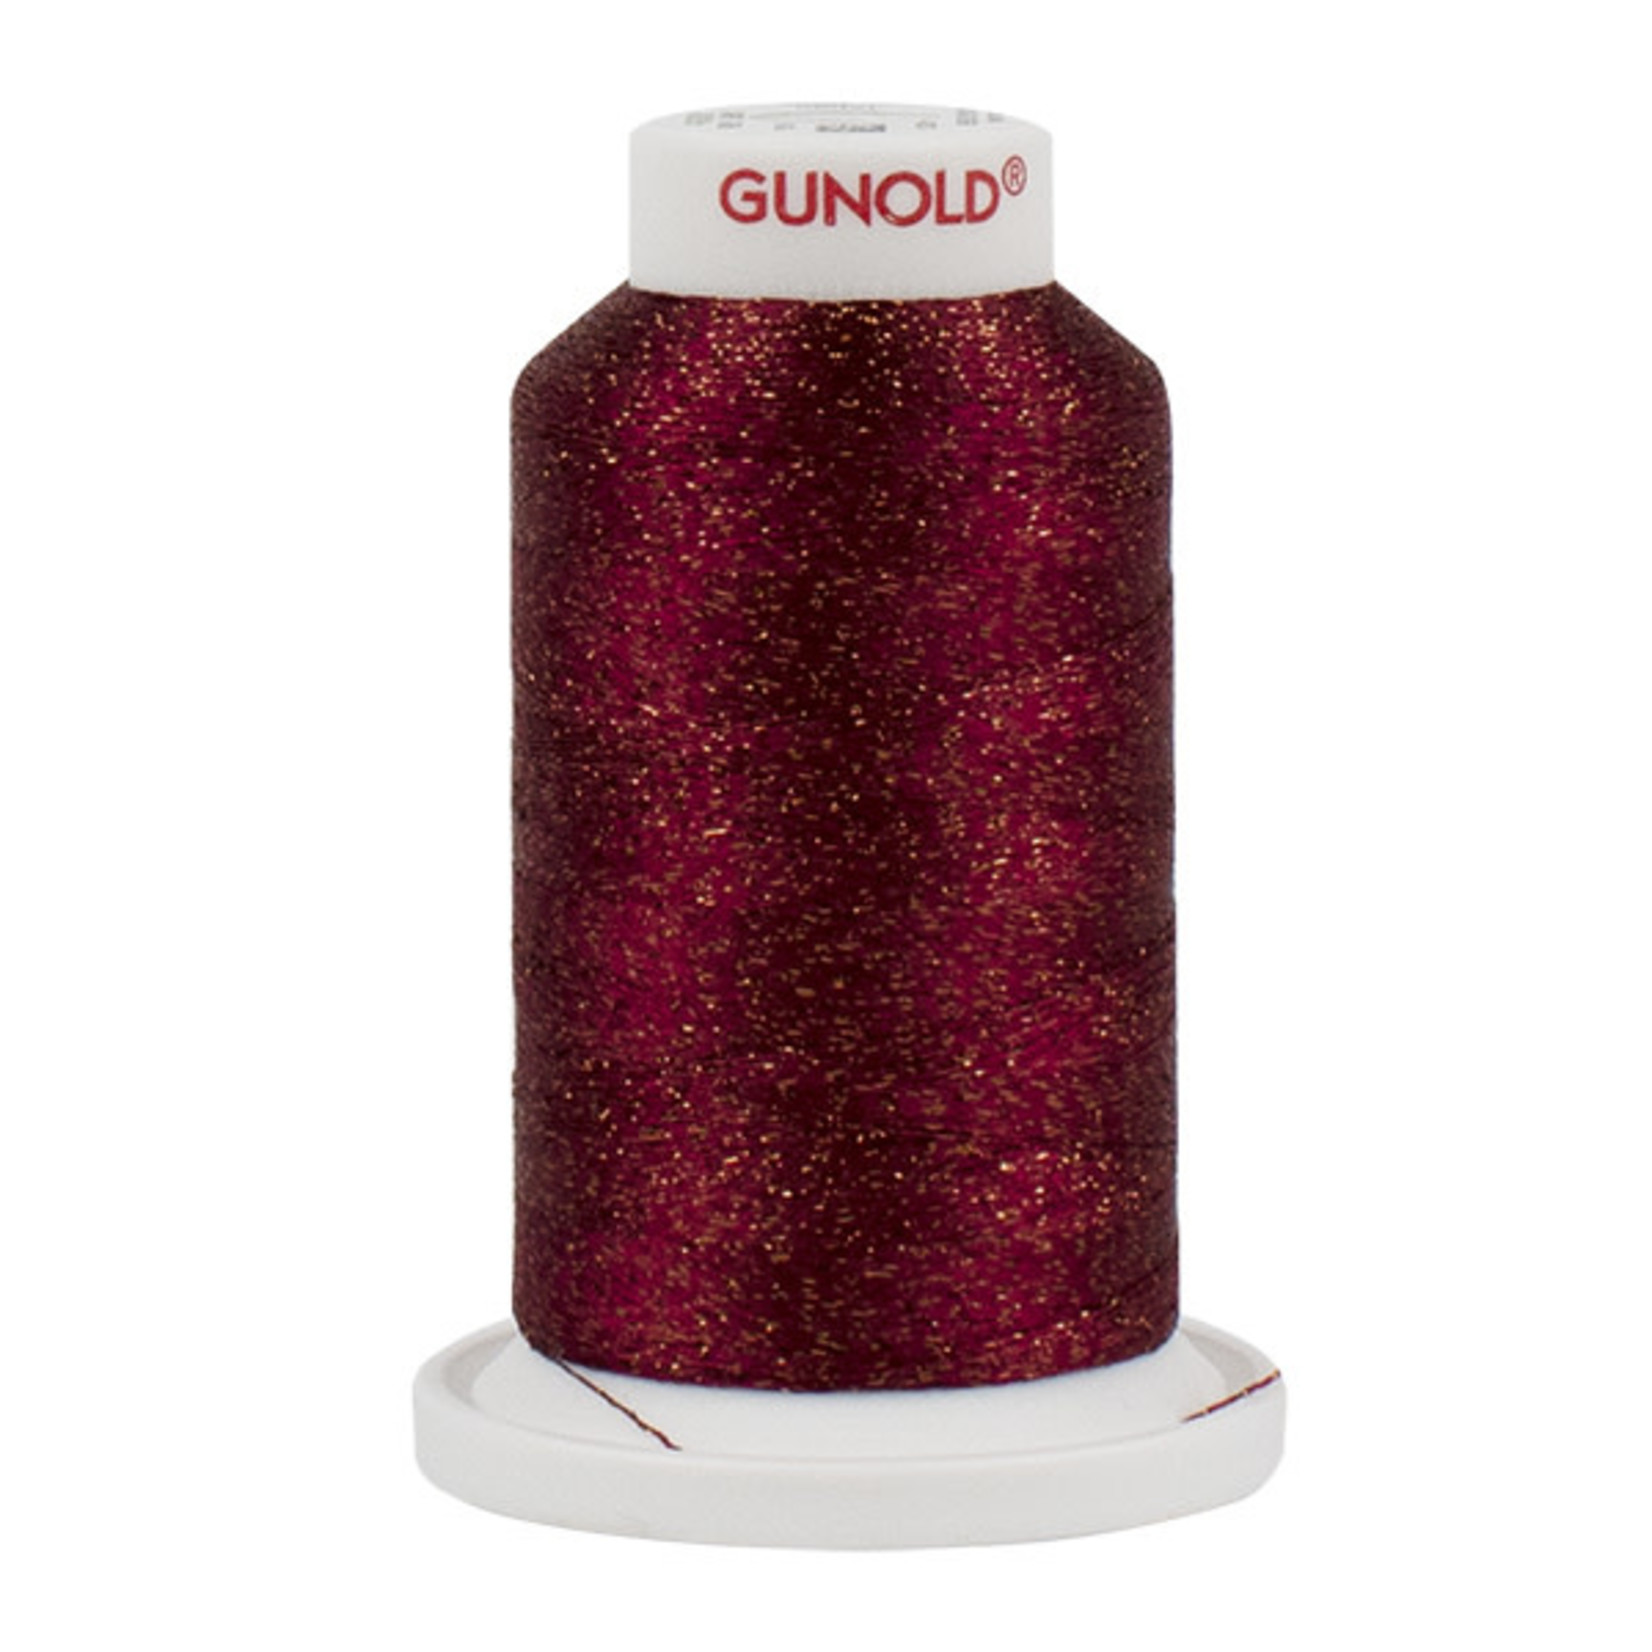 Gunold Poly Sparkle™ (Star™) Mini-King Cone 1,100 YD, 30 Wt, Claret with Copper Sparkle 50591